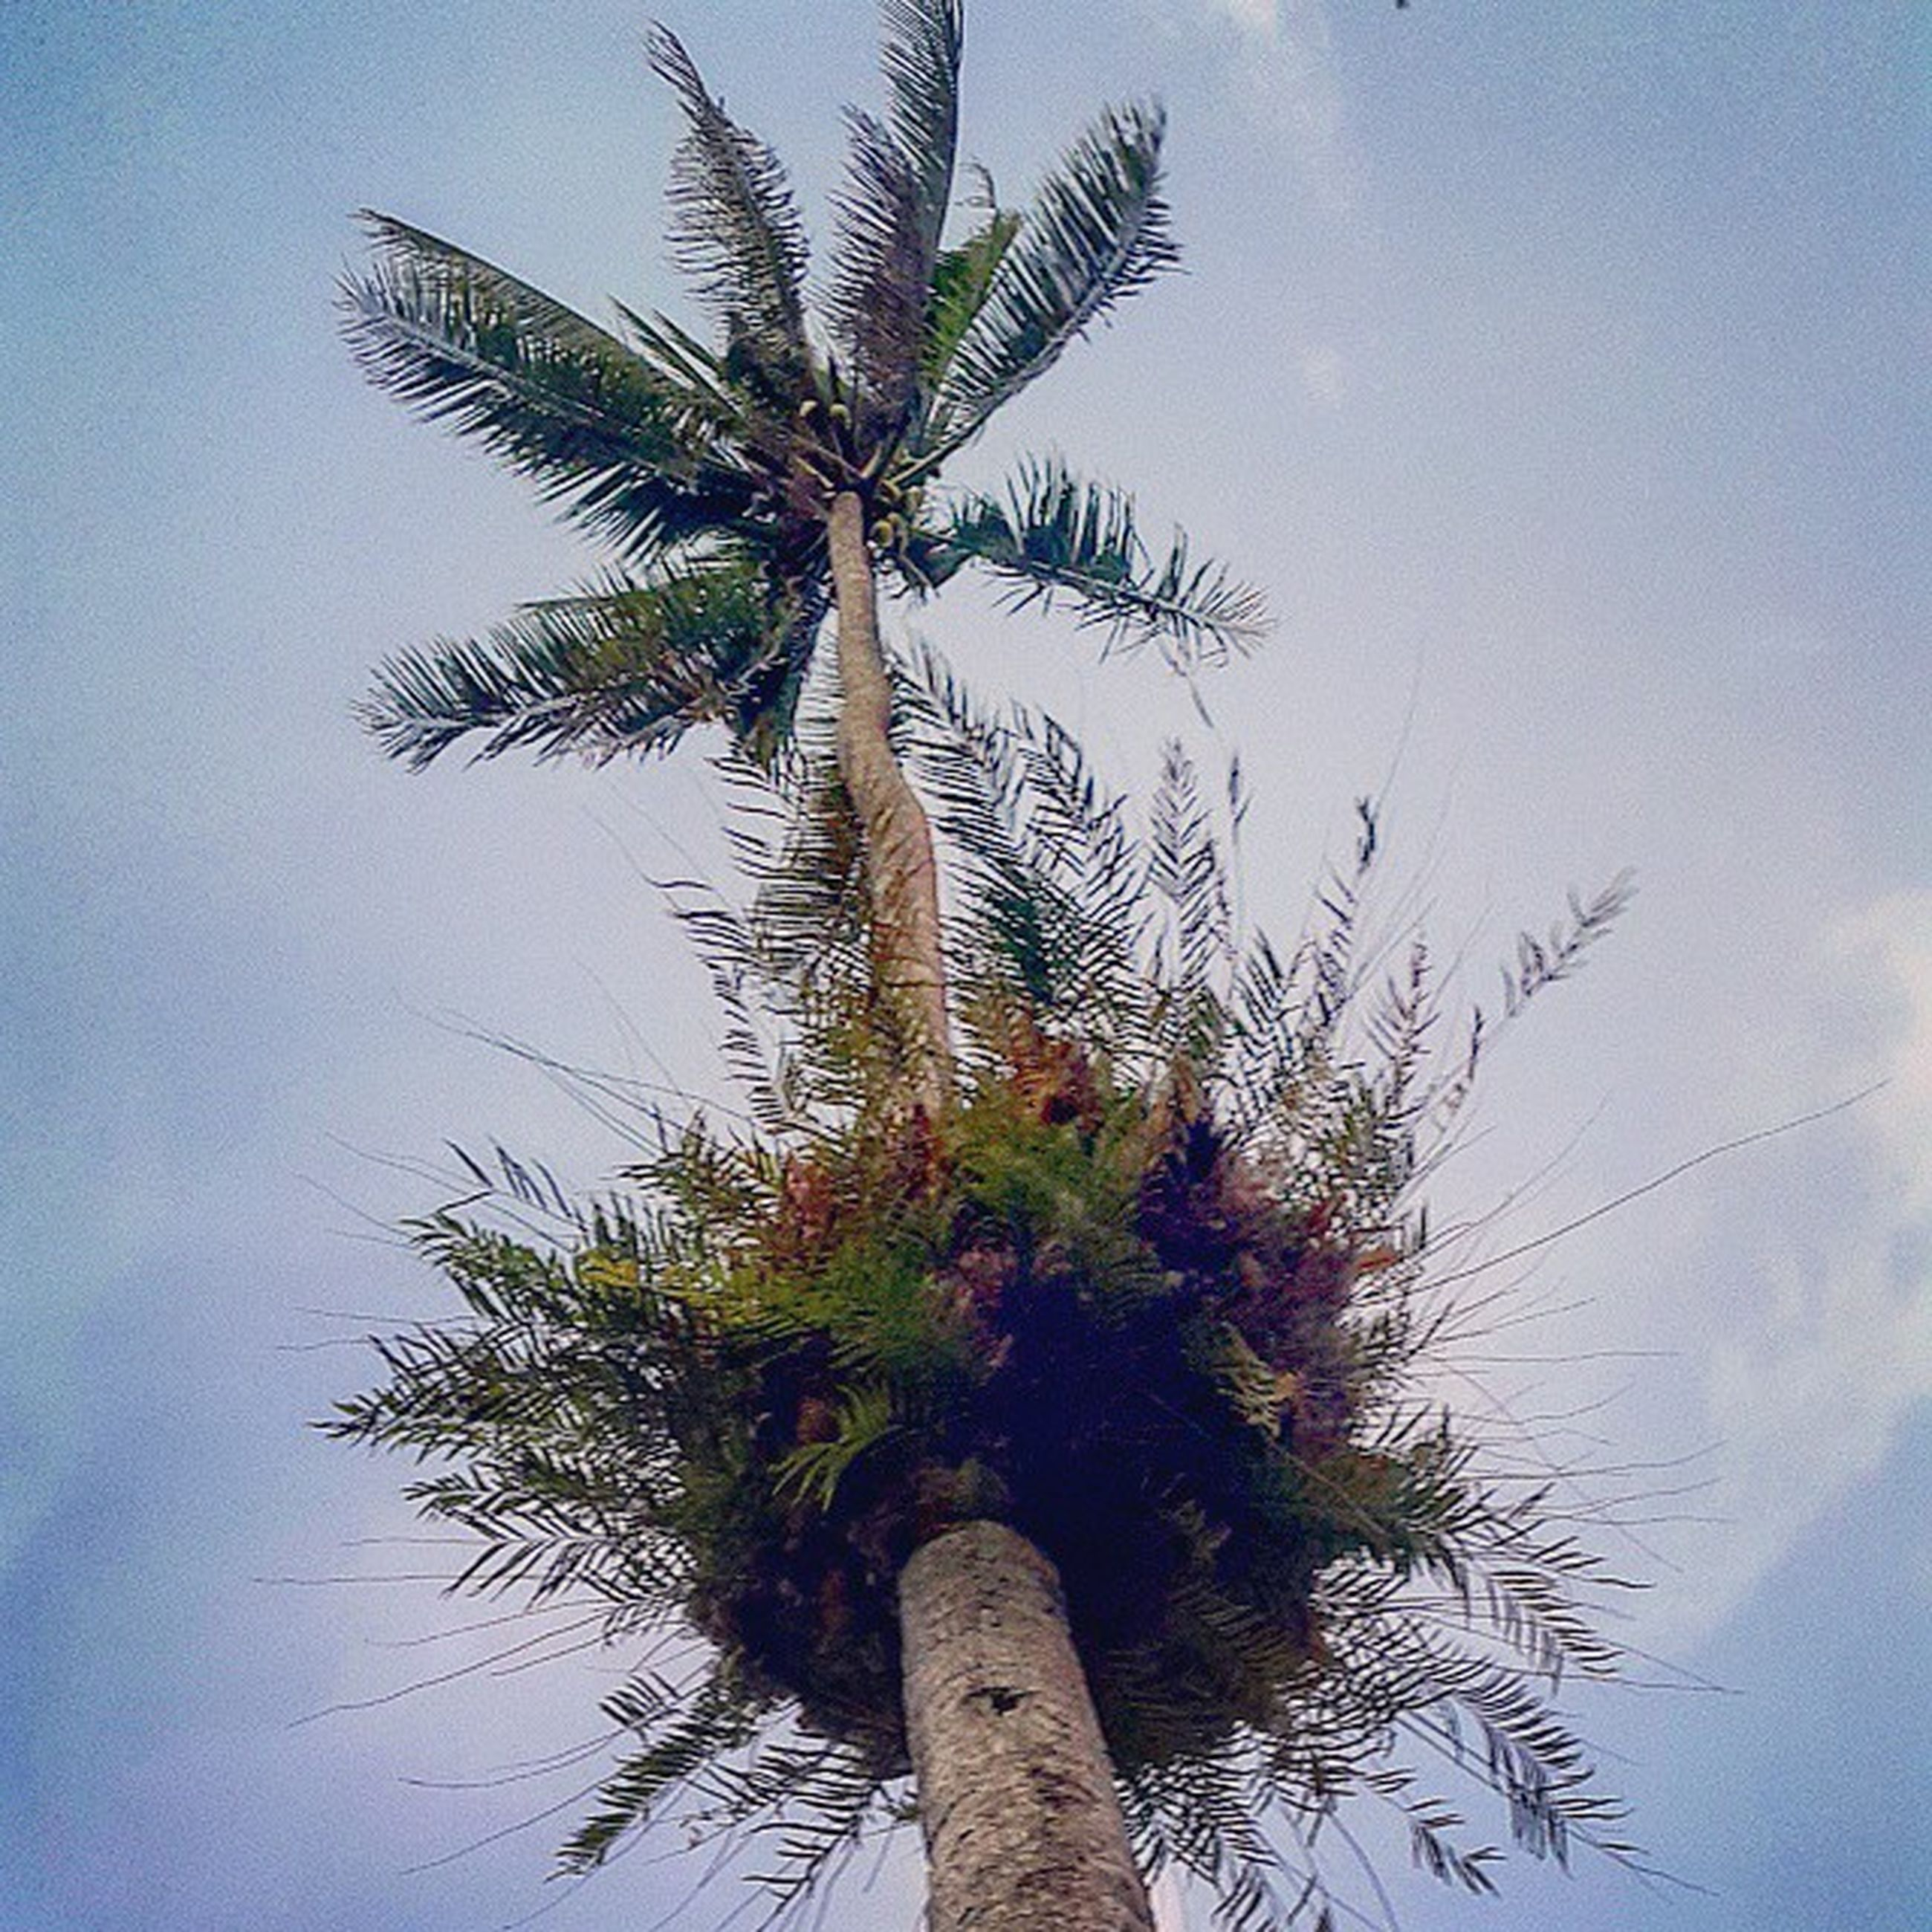 palm tree, low angle view, tree, growth, sky, tree trunk, nature, tall - high, tranquility, beauty in nature, branch, clear sky, palm leaf, no people, coconut palm tree, outdoors, day, scenics, silhouette, cloud - sky